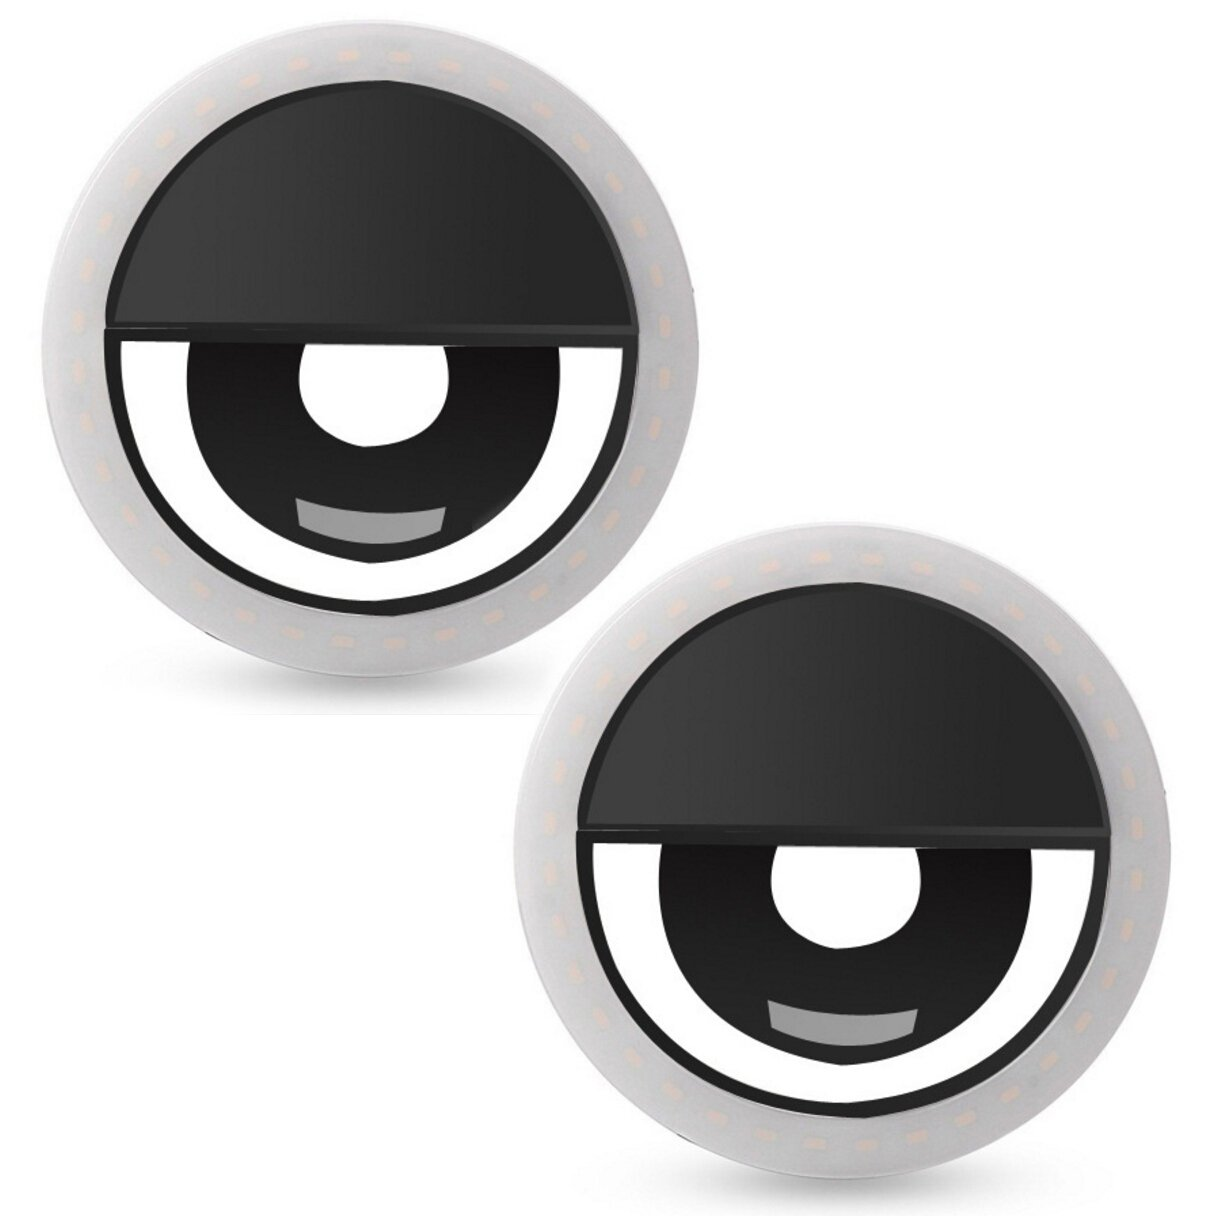 Magik Portable Selfie Luminous 36 LED Light Up Smart Phone/Tablet/Computer Ring for Photo Shooting, Live Show and Any Occasion (2 Pack-Black)